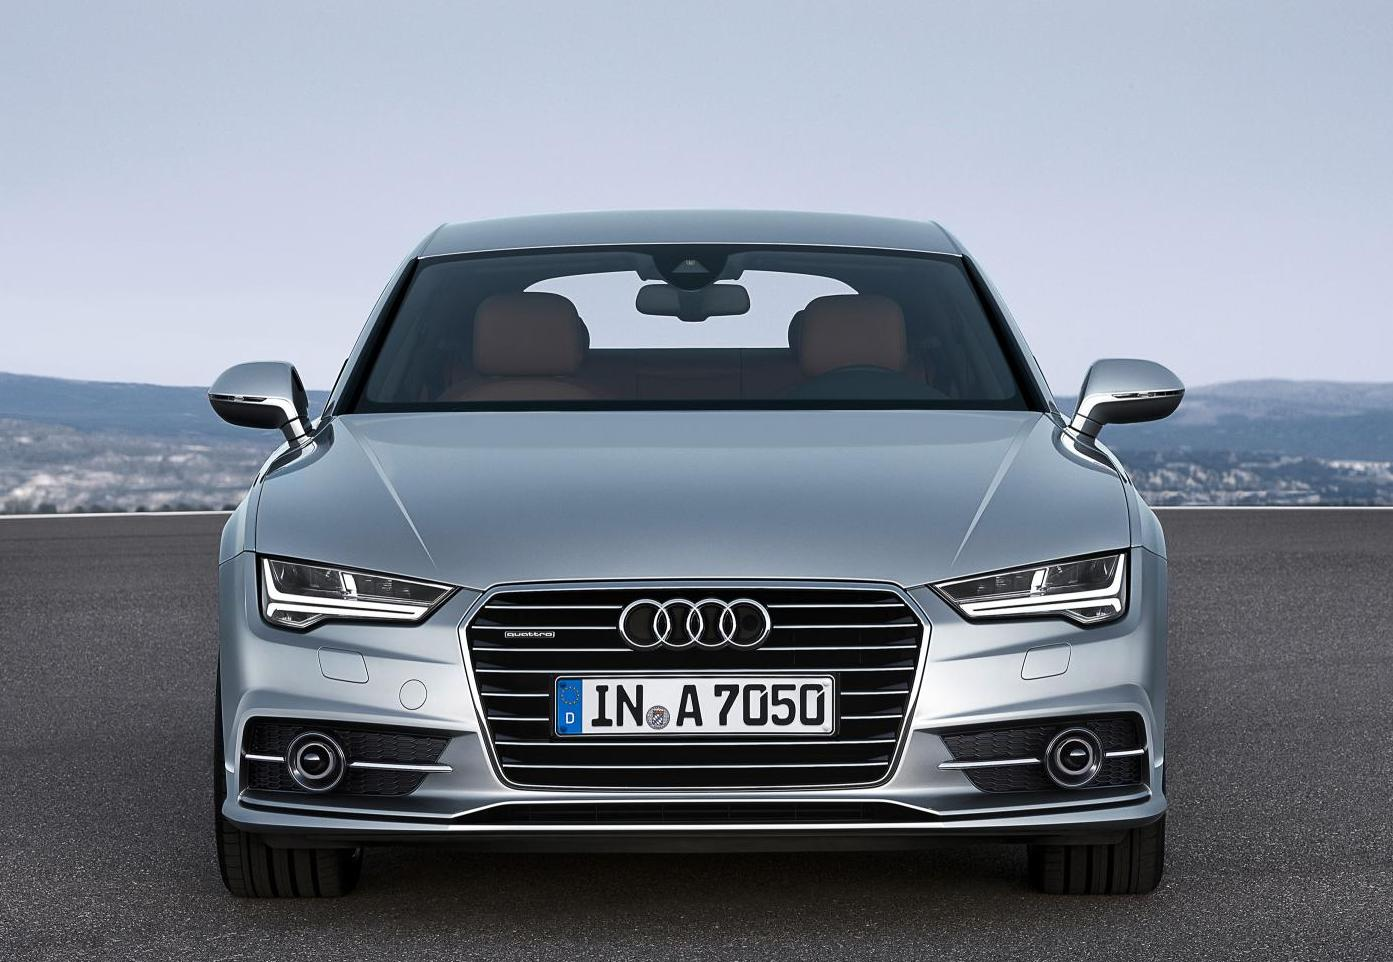 2015 Audi A7 Sportback unveiled- Pictures inside - India Car News Audi A India on audi a8 india, audi a3 india, audi q3 india, audi q7 india, audi r8 india, audi a5 india, 2014 audi a6 india,